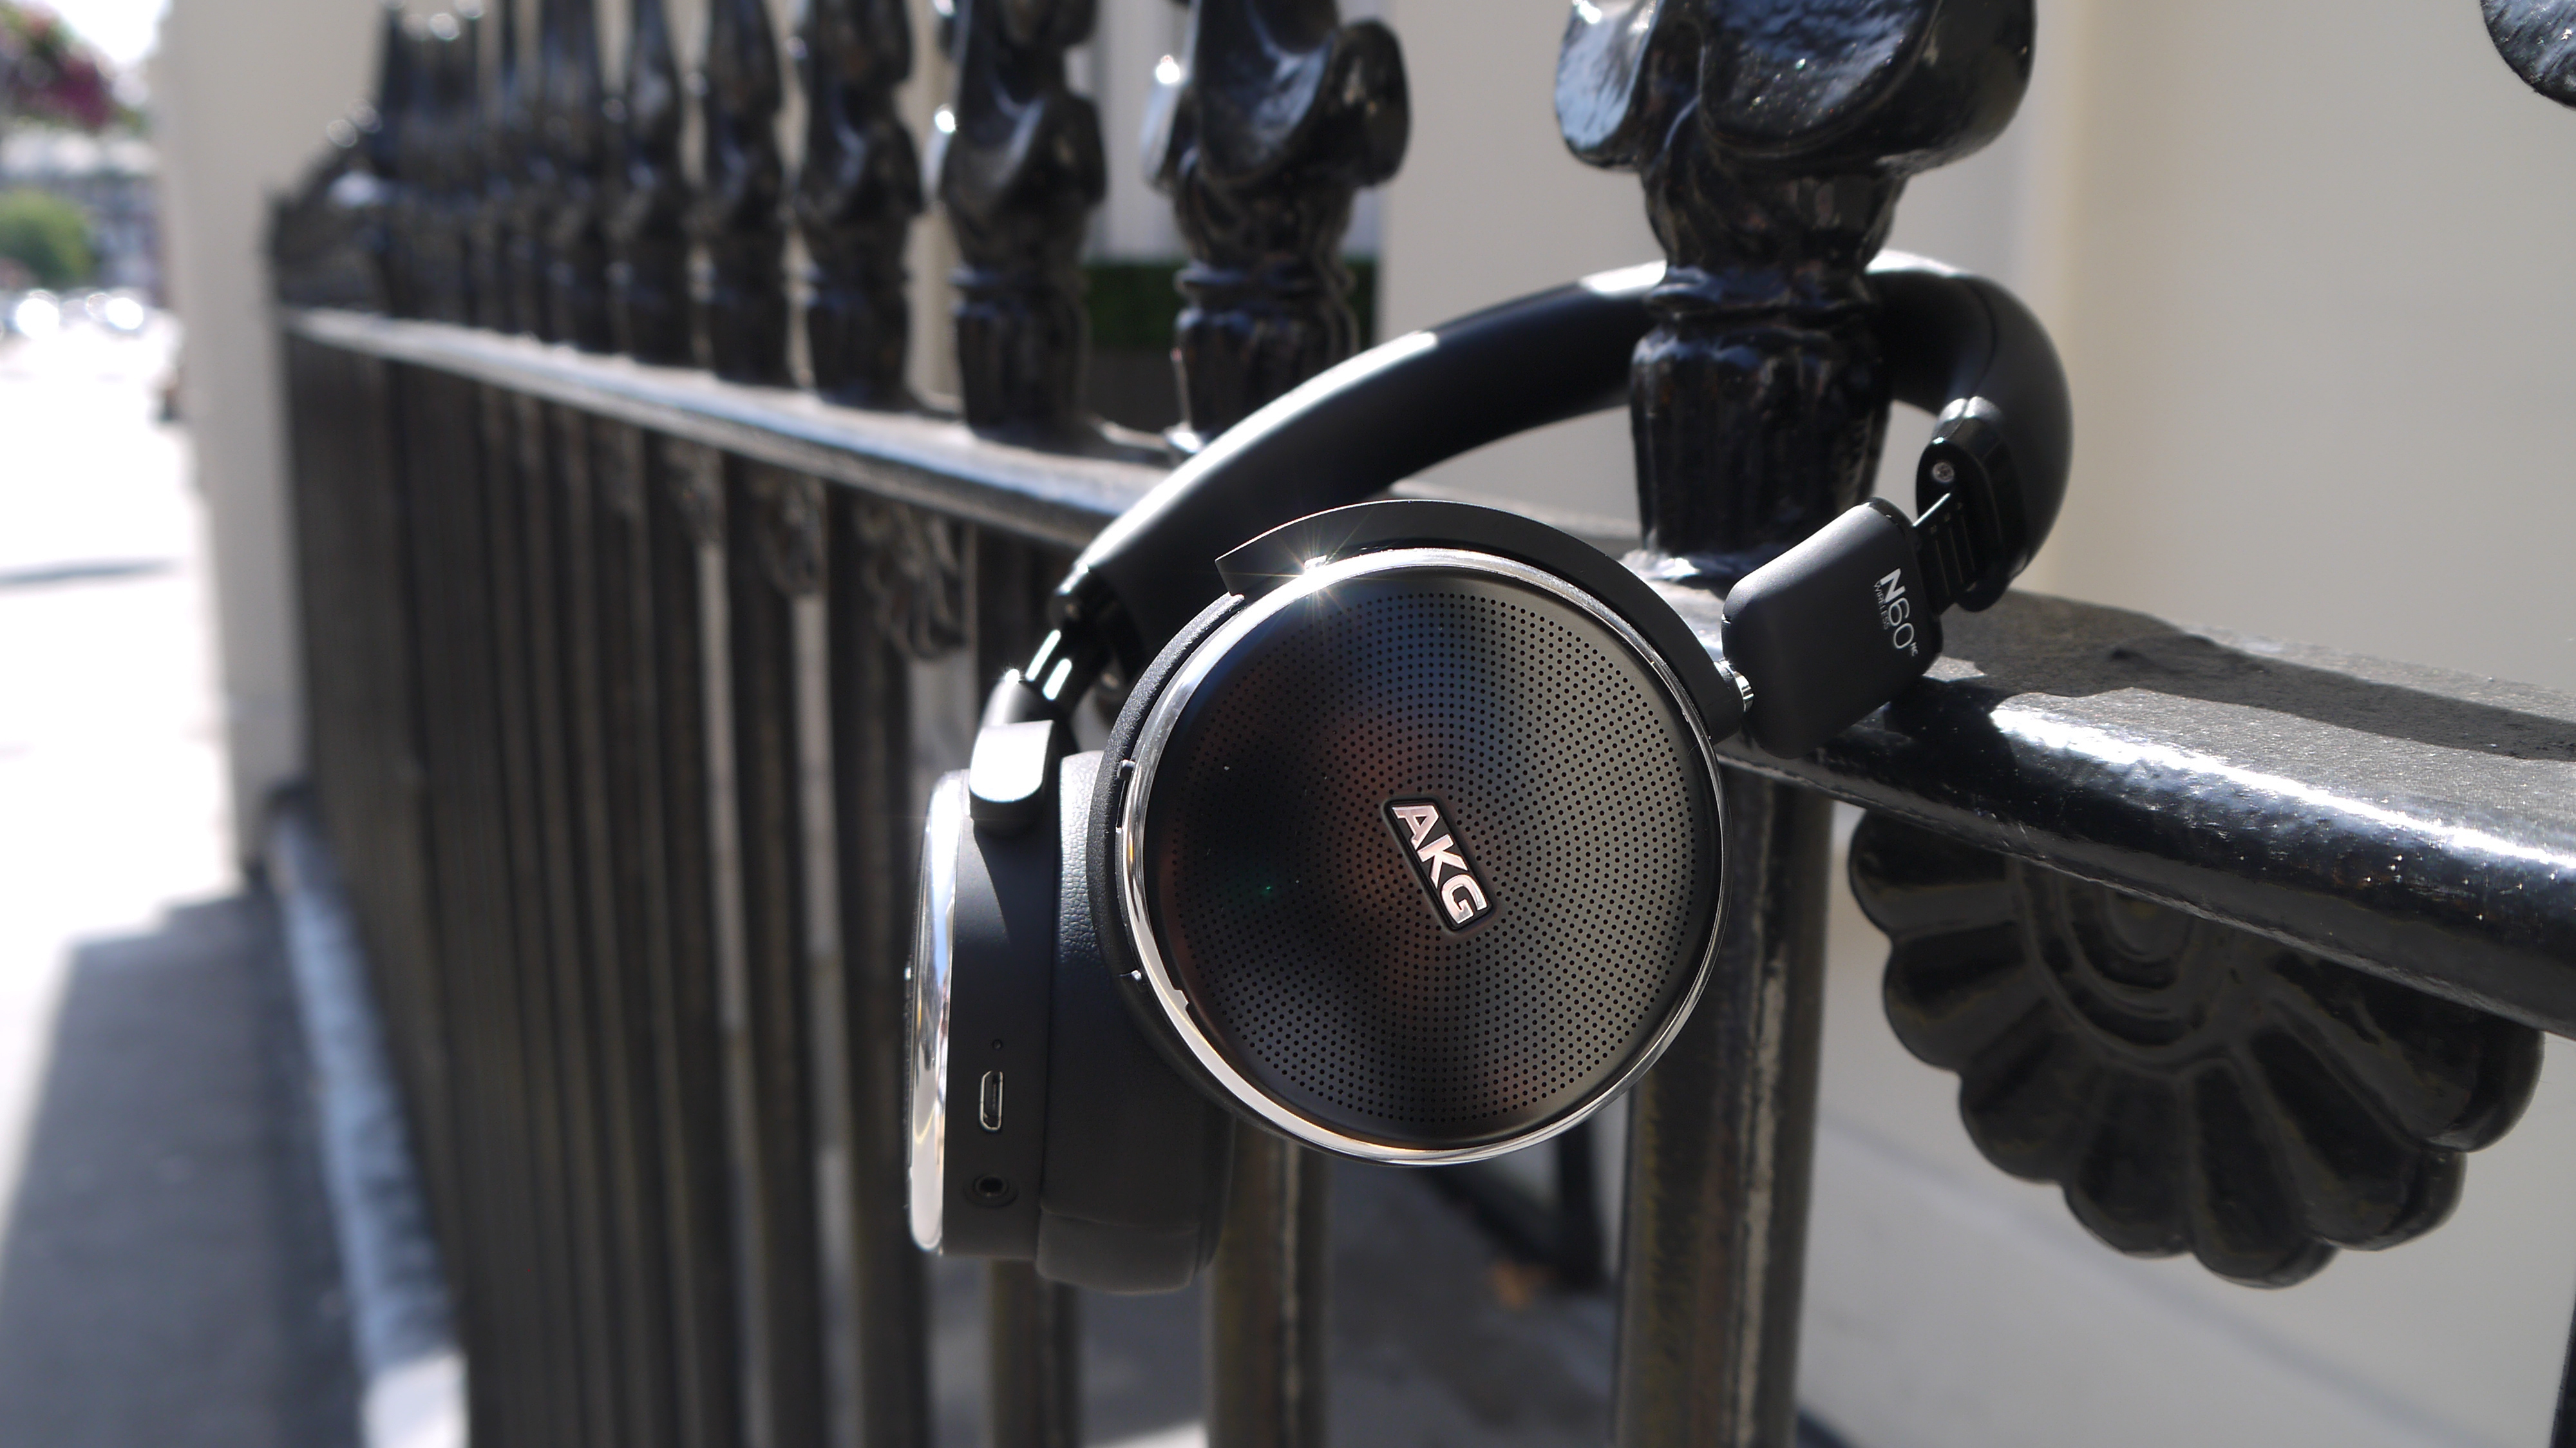 27d2f6787e4 The best cheap wireless headphone deals and sales on Amazon Prime Day 2019  | TechRadar